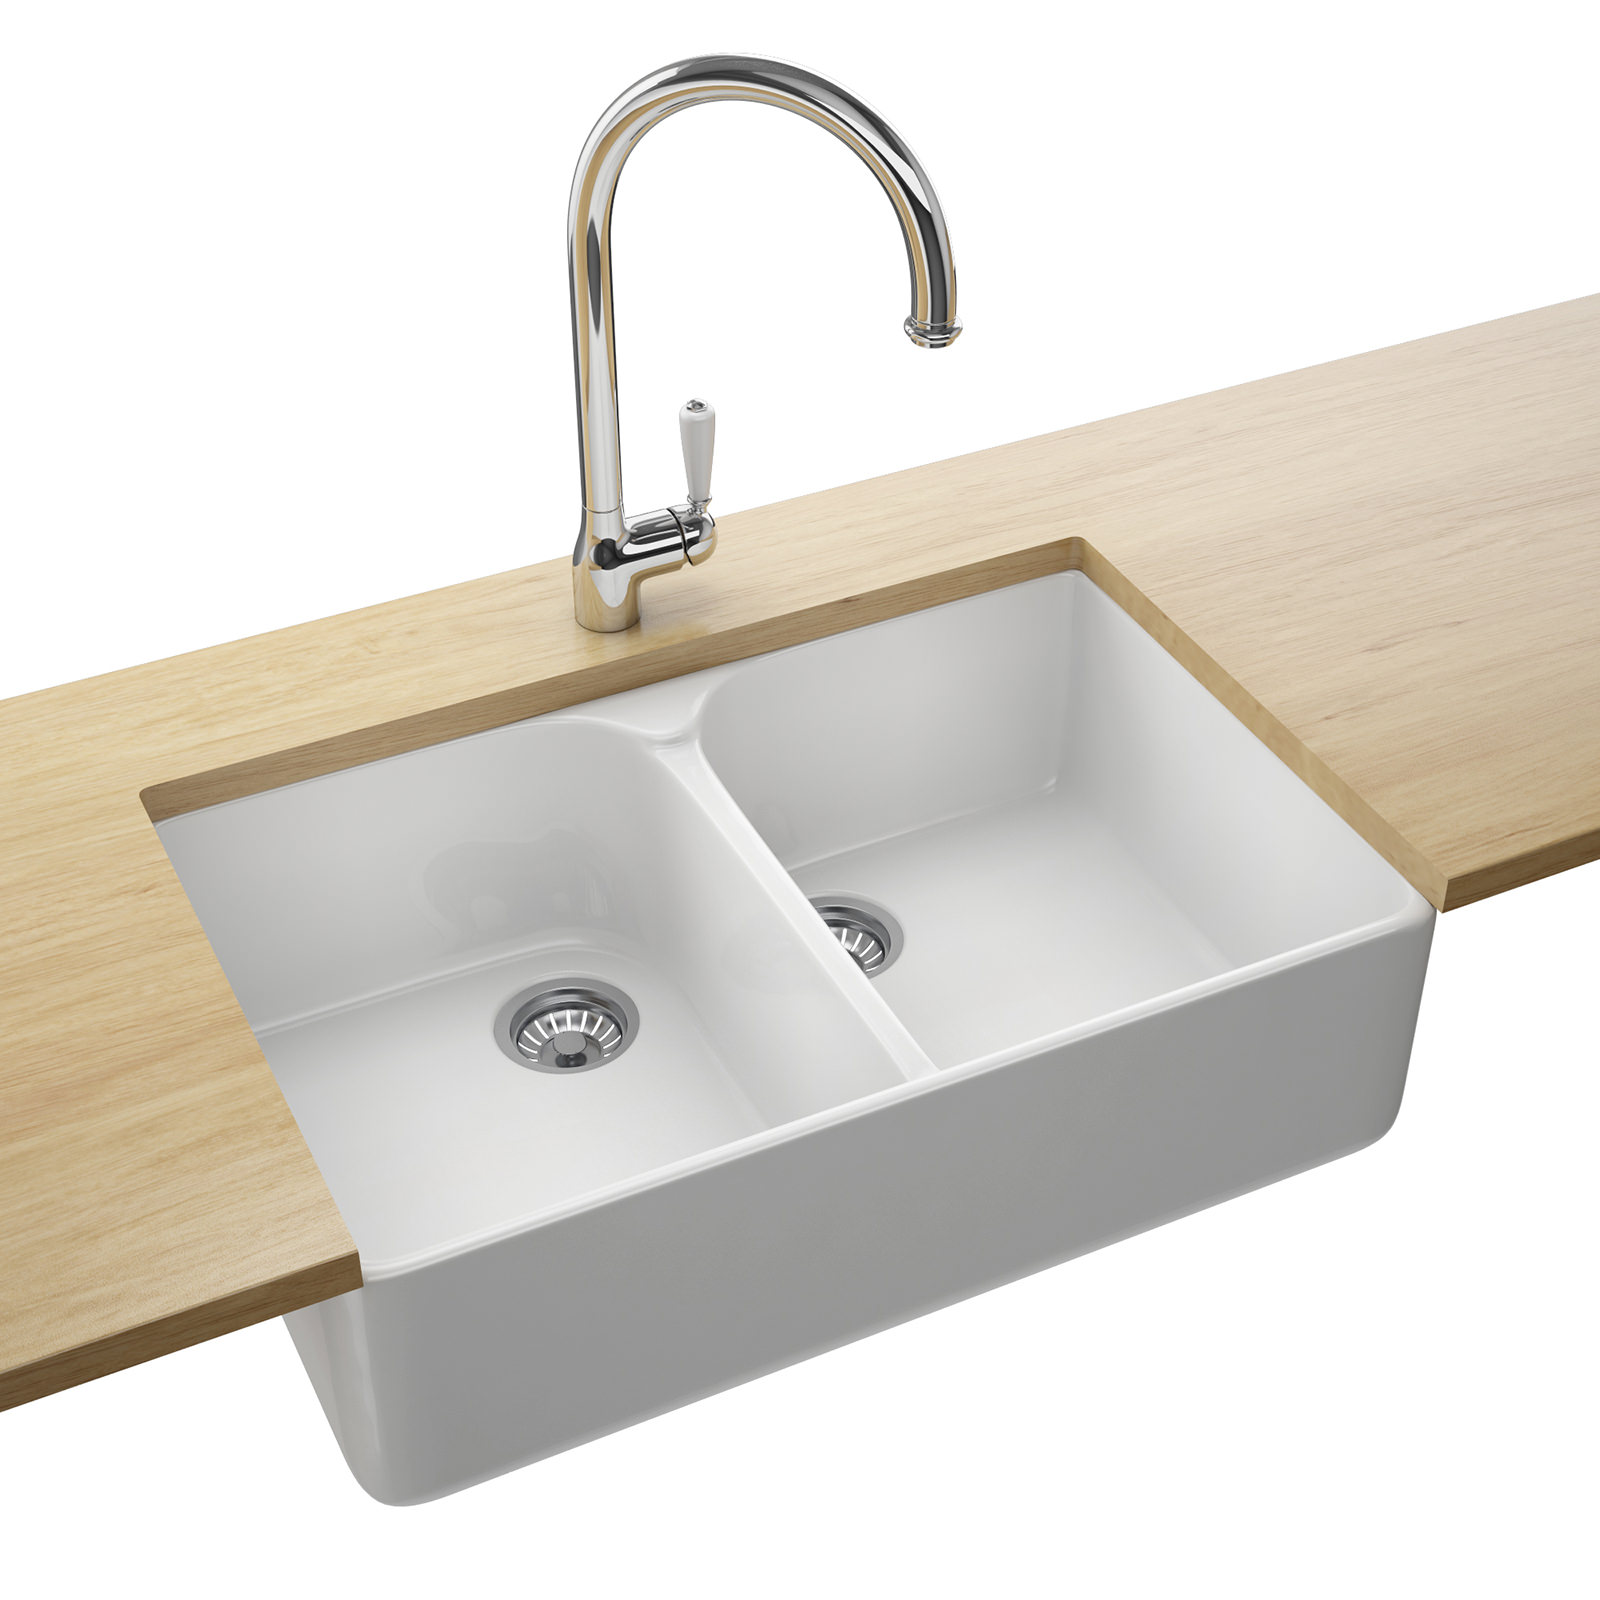 Franke Belfast VBK 720 Ceramic White 2.0 Bowl Kitchen Sink